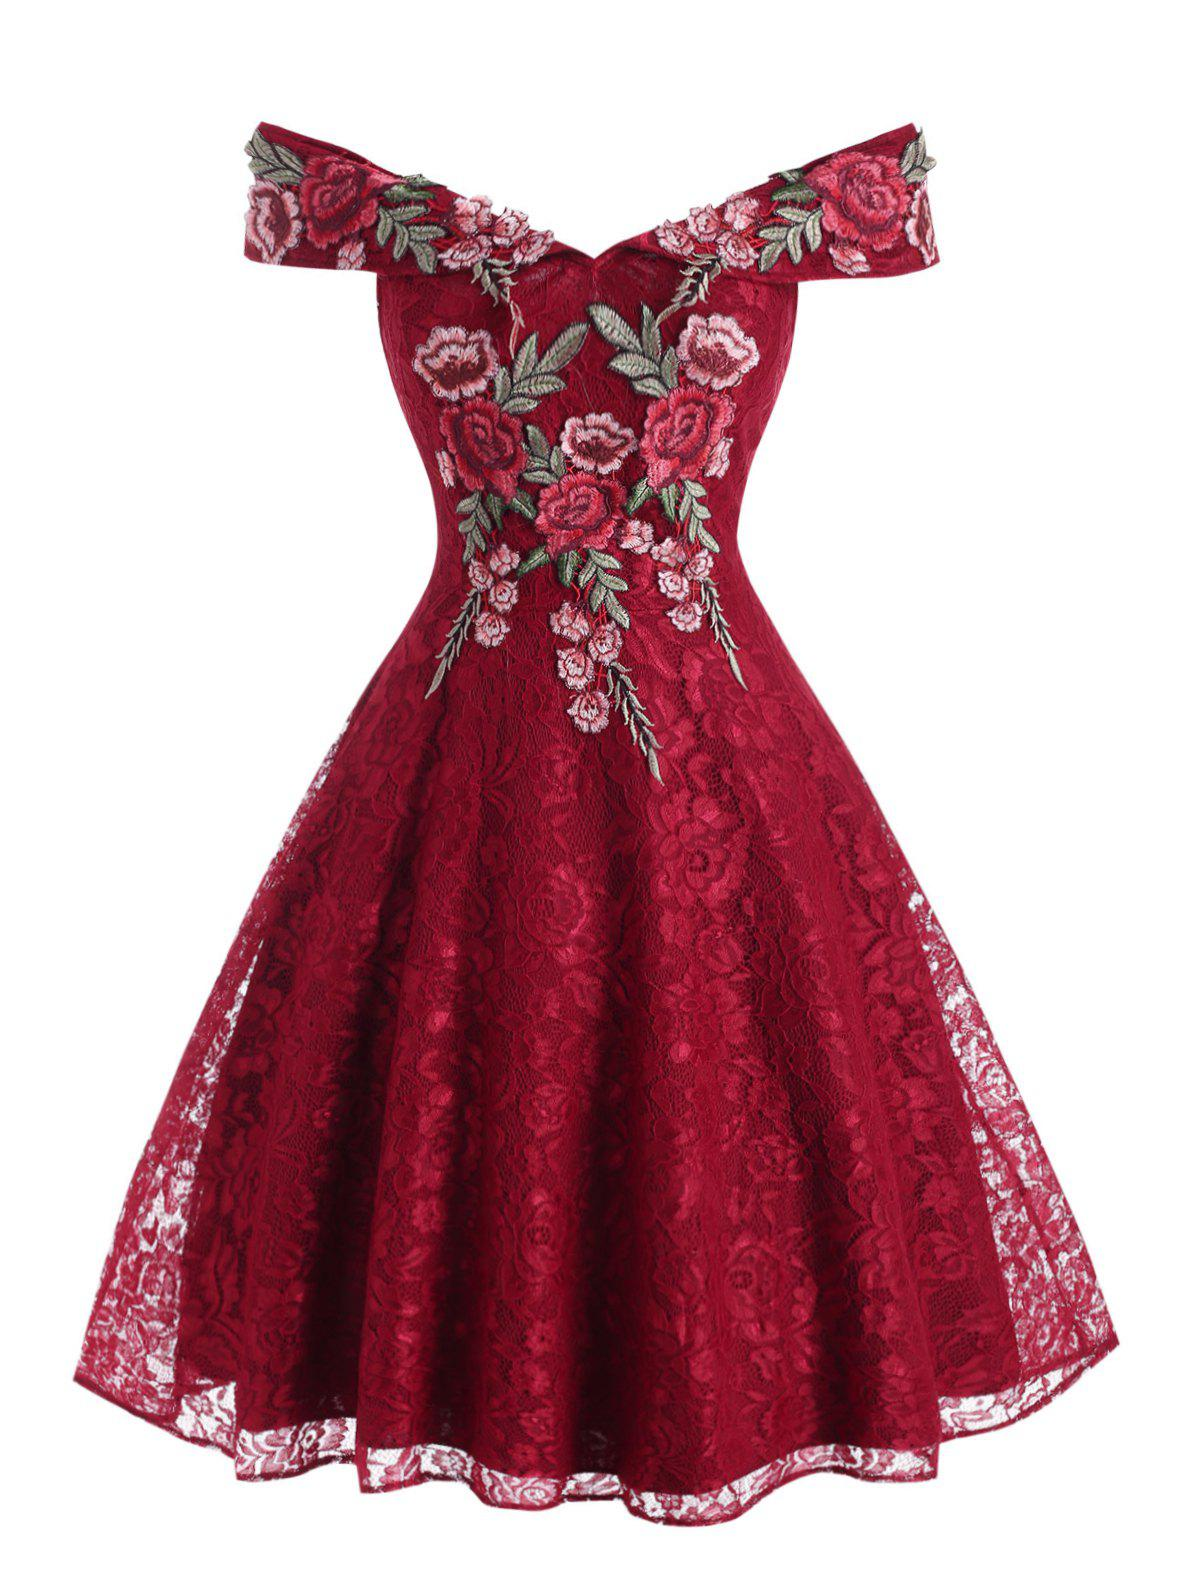 Flower Applique Lace Off Shoulder Foldover Dress - RED XL